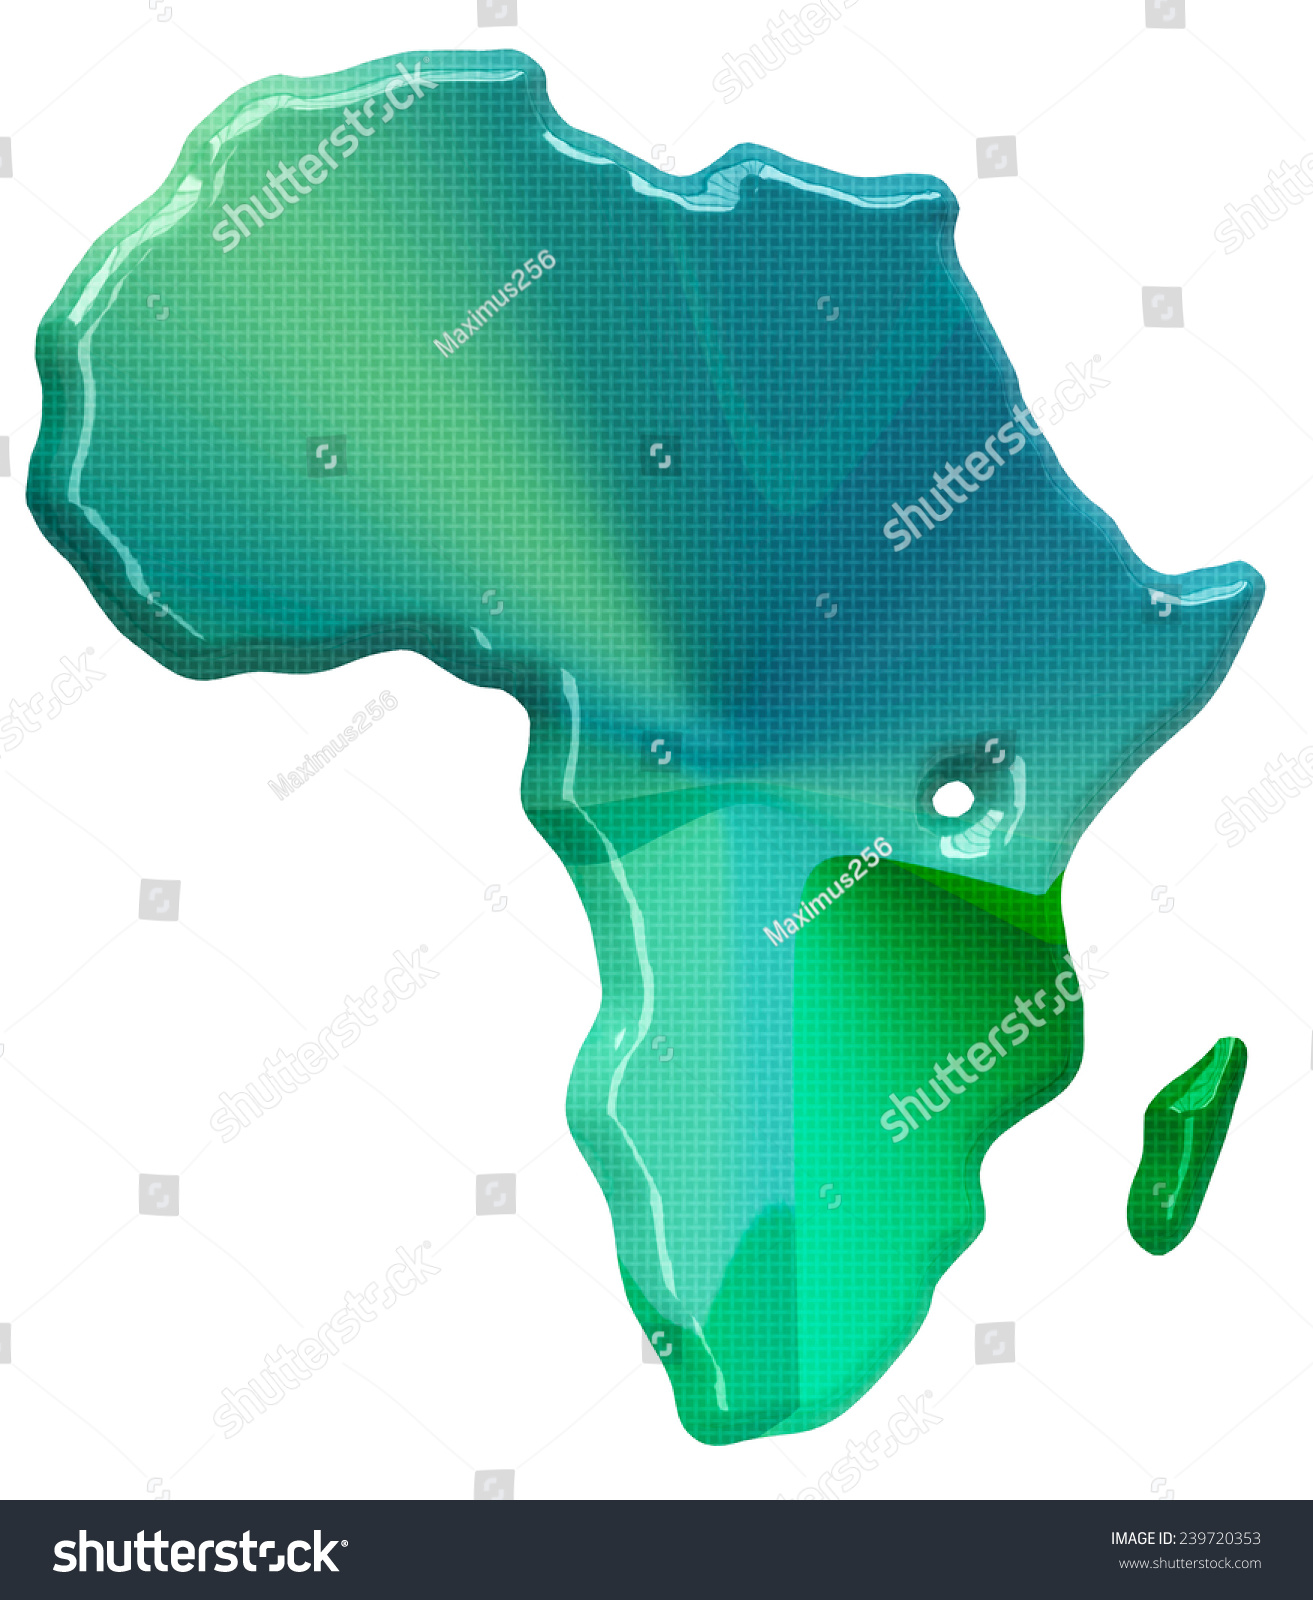 Map Of Africa 3d.Map Africa 3 D Style Stock Illustration 239720353 Shutterstock